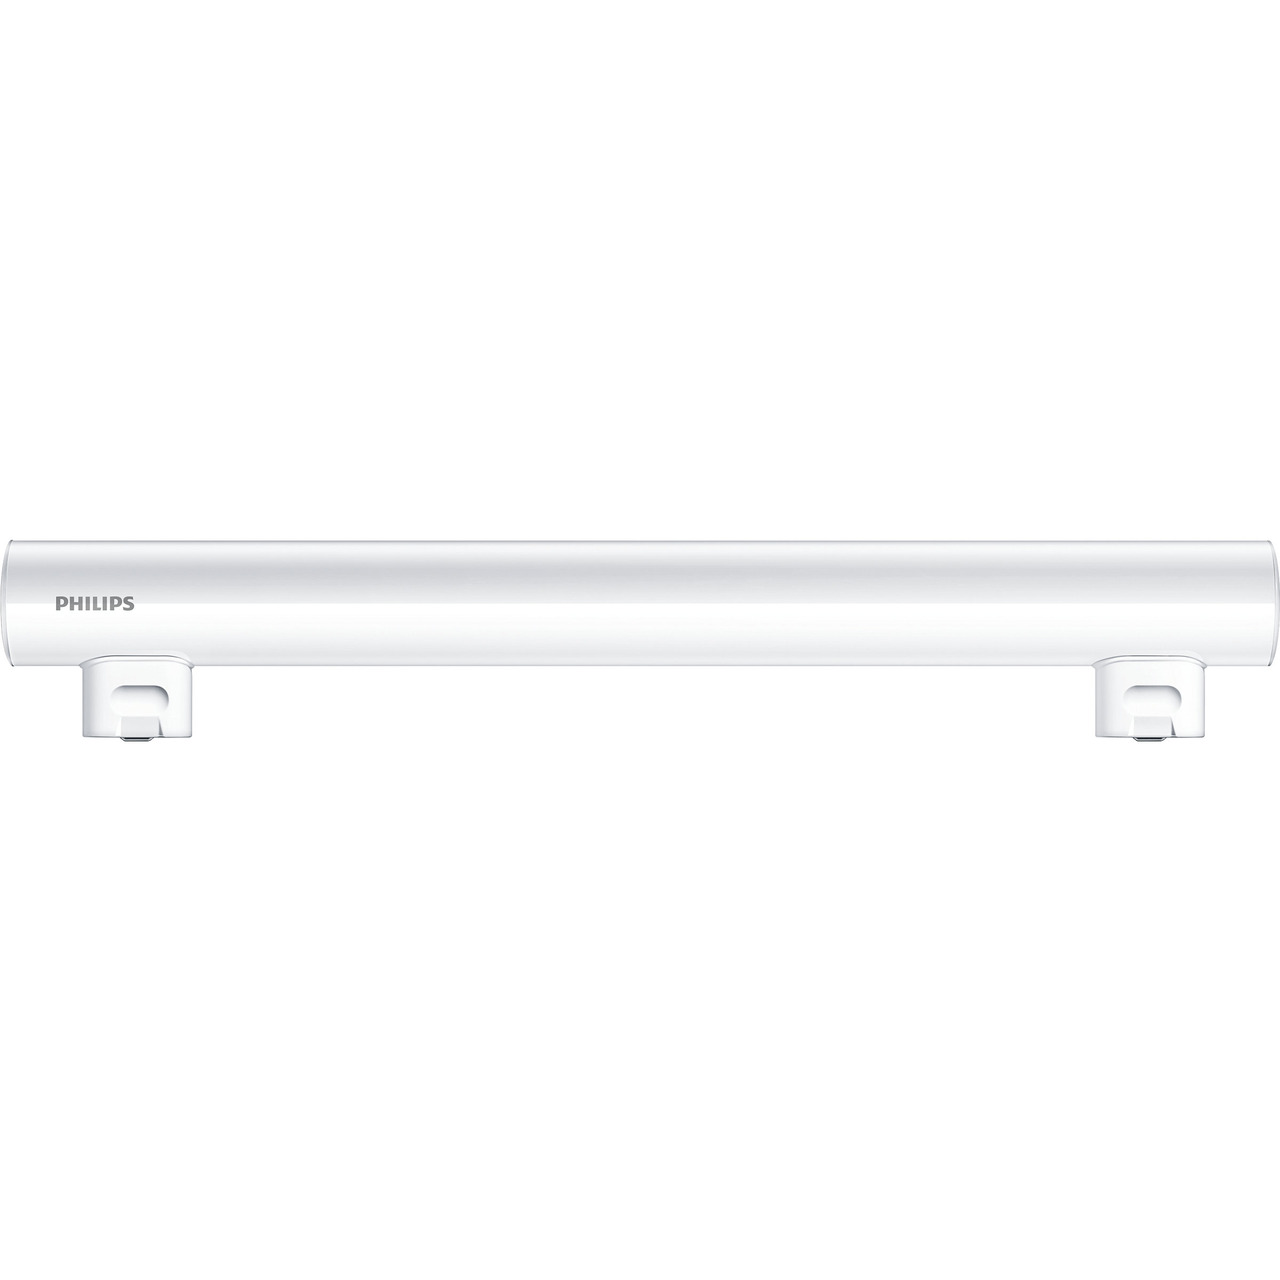 Philips 2-2-W-LED-Linienlampe PhilinealLED- 300 mm 250 lm- nicht dimmbar- warmweiss